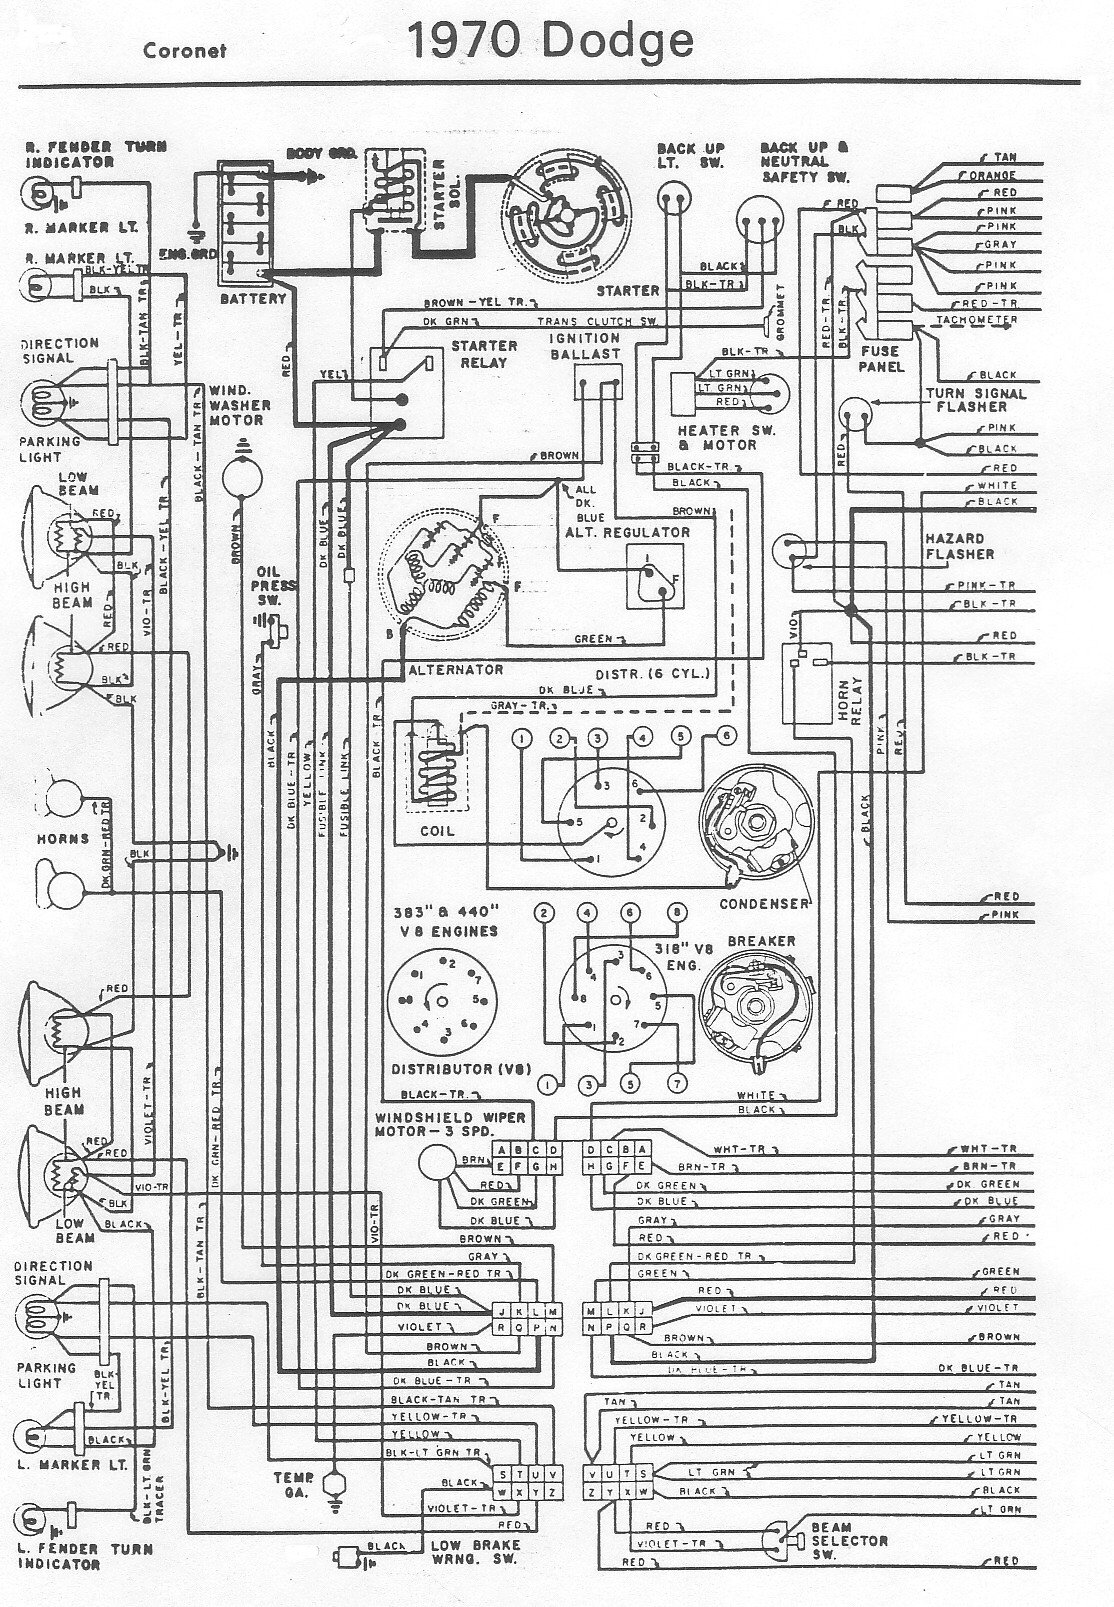 1970 dodge dart wiring diagram 1970 image wiring 1955 dodge coronet wiring diagram 1955 auto wiring diagram schematic on 1970 dodge dart wiring diagram